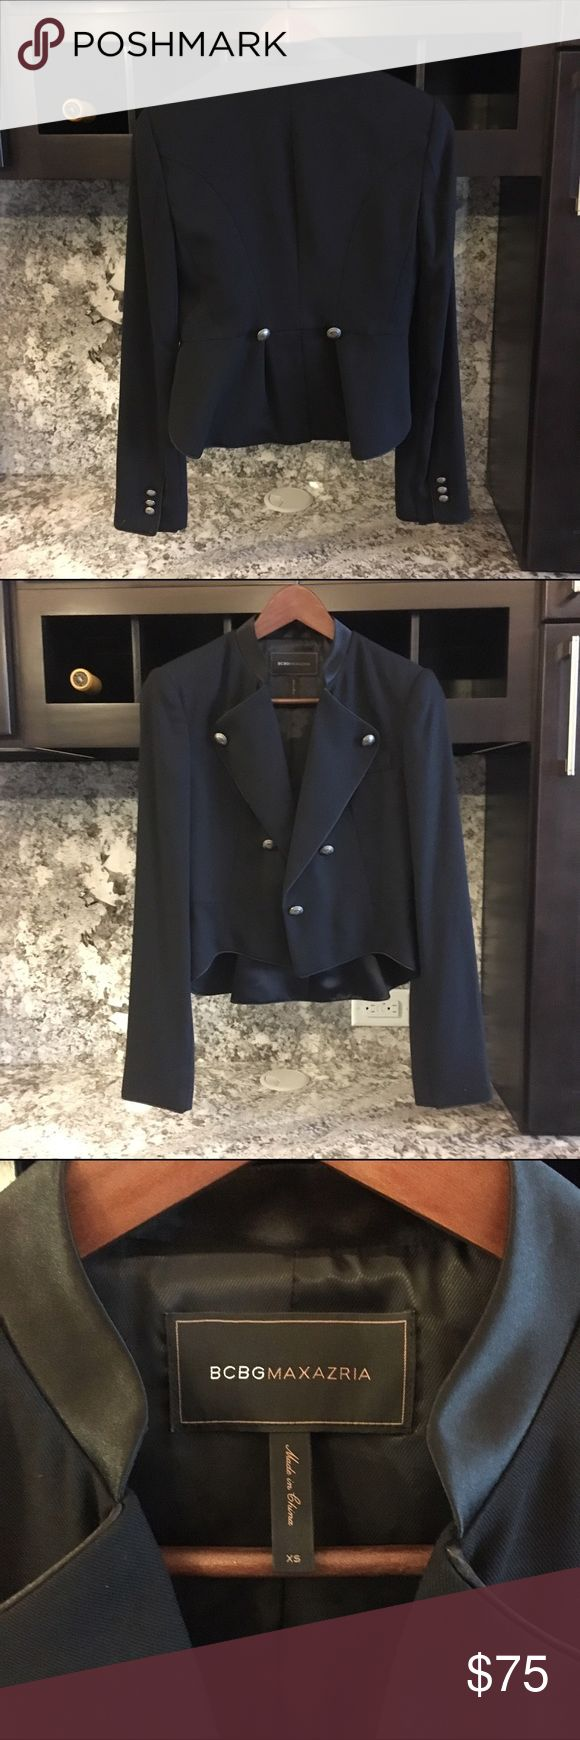 {BCBG} Black Military Style Blazer This military style blazer is fitted with beautifully detailed bronze buttons. Amazing BCBGMAXAZRIA quality! I'm selling because I need a size smaller. Like new, no signs of wear or damage. BCBGMaxAzria Jackets & Coats Blazers